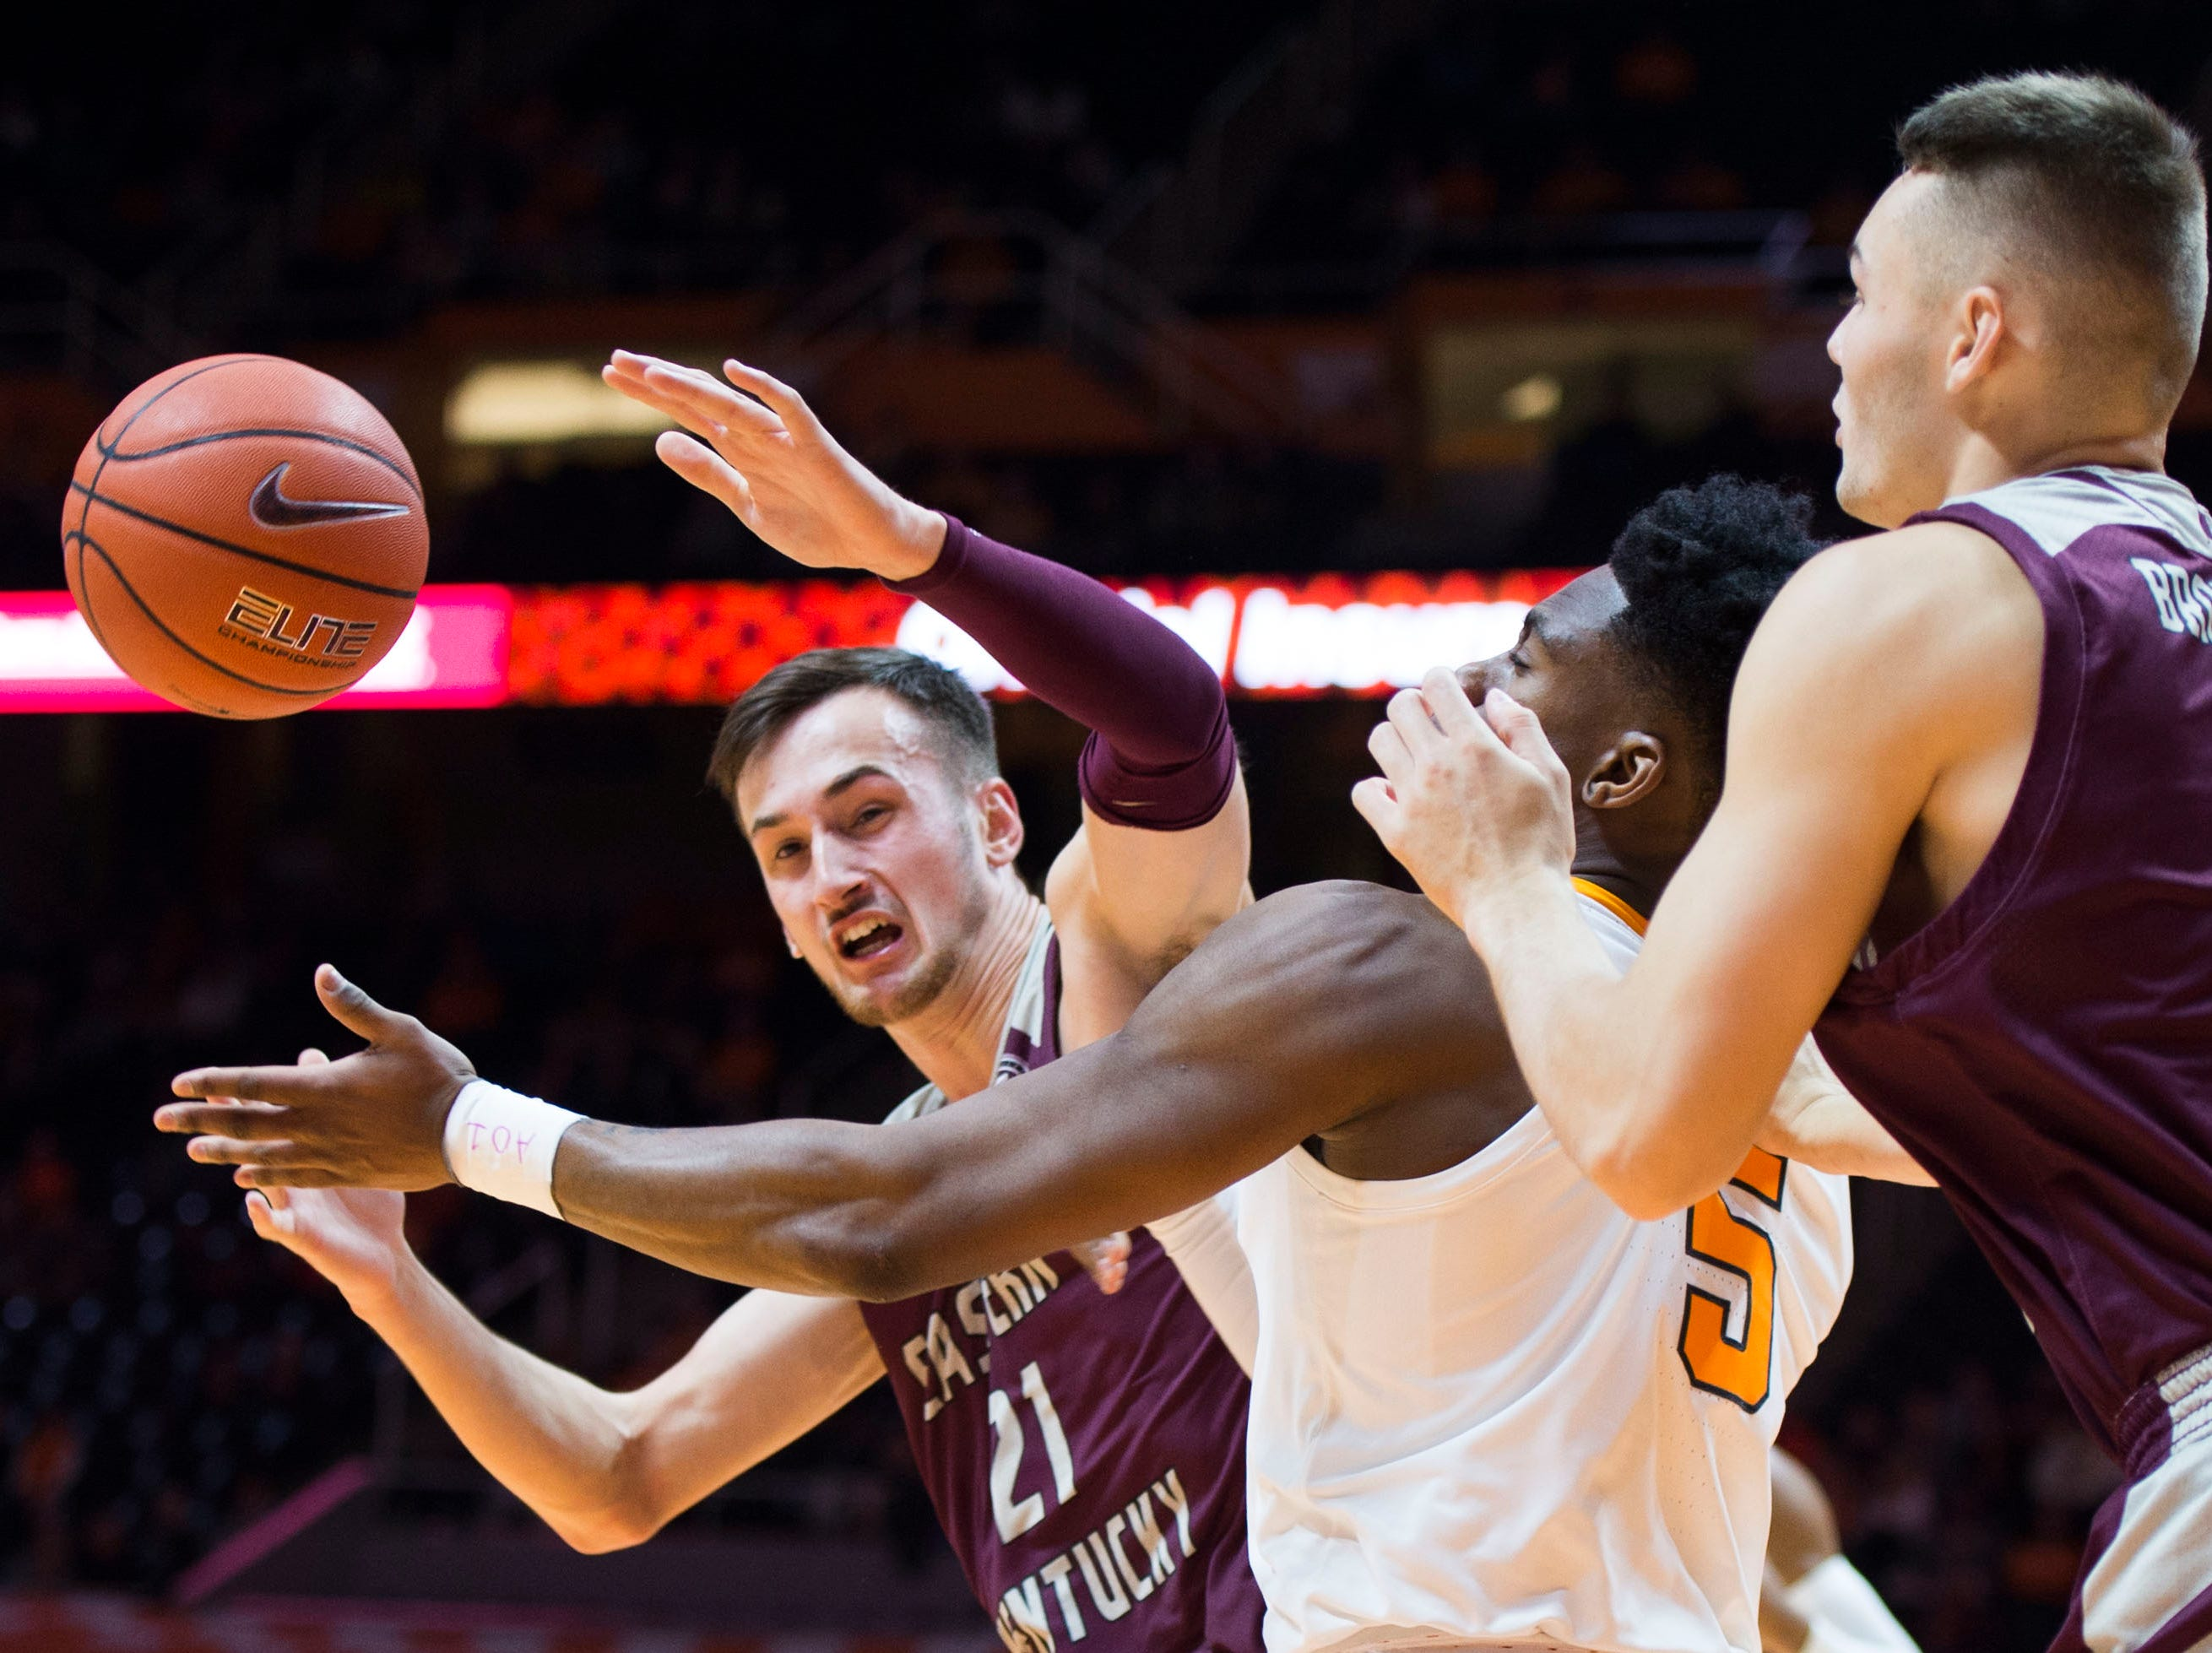 EKU's Lachlan Anderson (21) attempts to gain possession of the ball during the first half of a NCAA men's basketball game between Tennessee and Eastern Kentucky University at Thompson-Boling Arena Wednesday, Nov. 28, 2018.